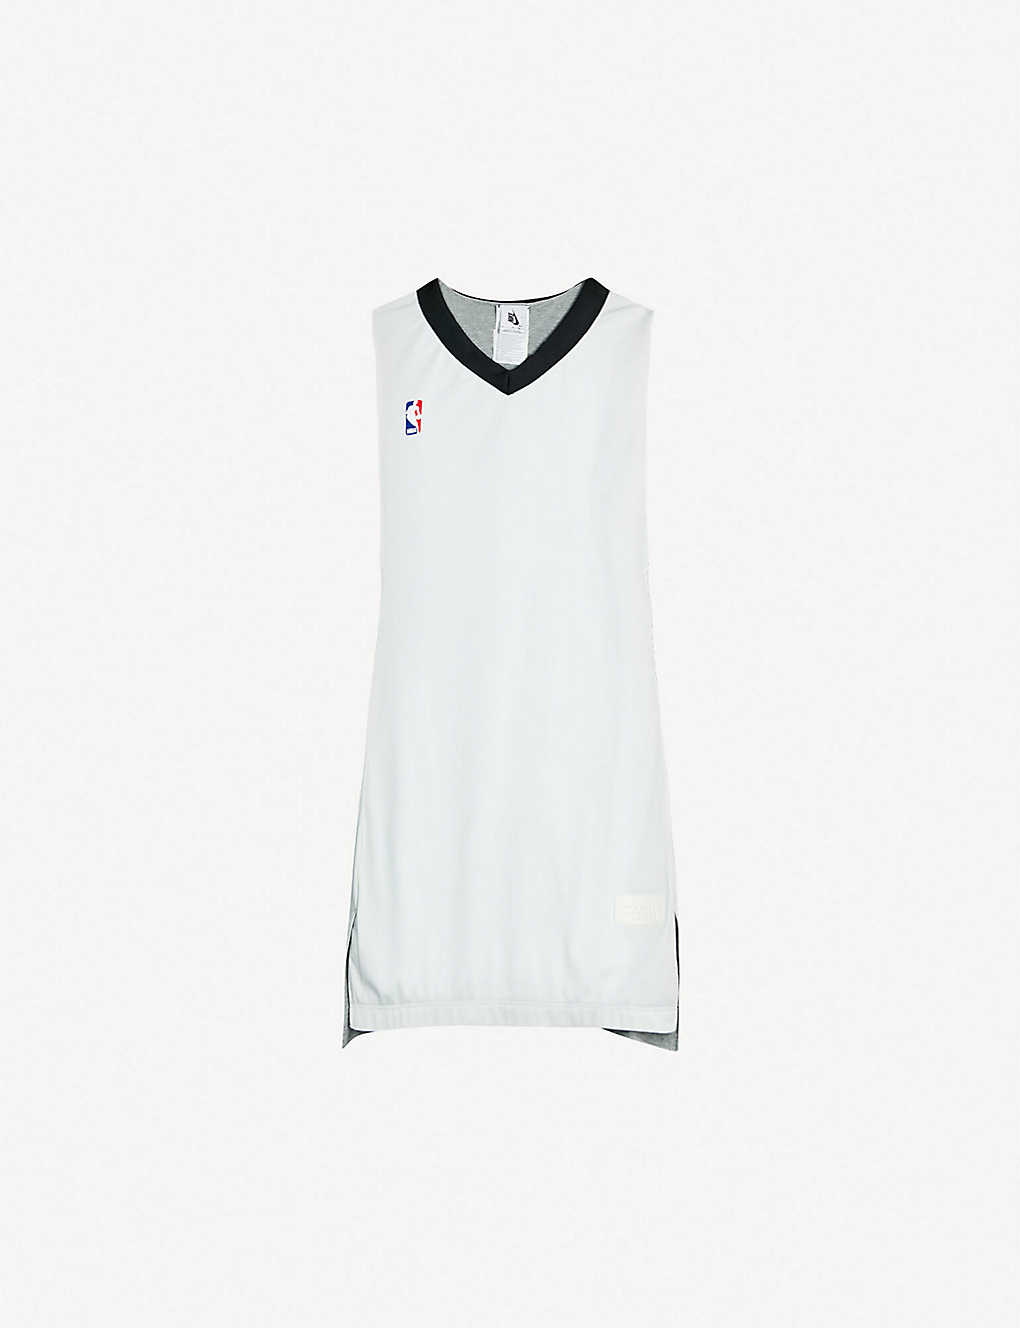 8ba9bbe7c8f Logo-print reversible sports-jersey top - White grey black ...